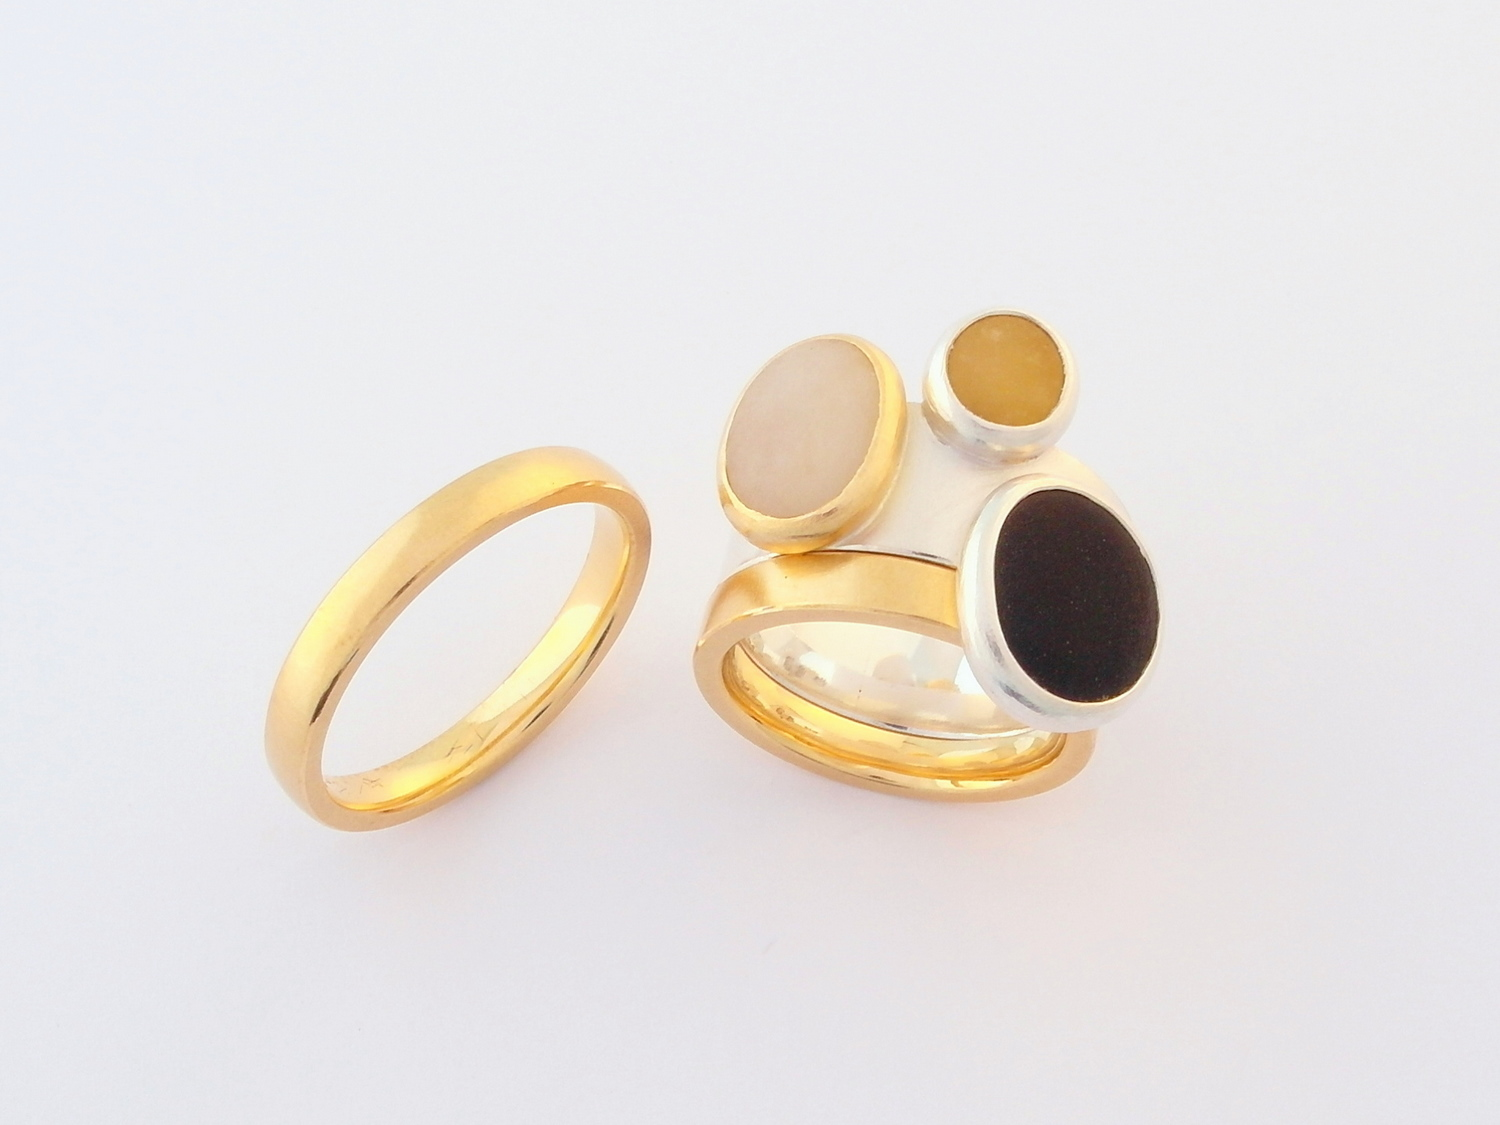 His and hers wedding and engagement rings in 18ct yellow gold and silver set with naturally coloured beach pebbles